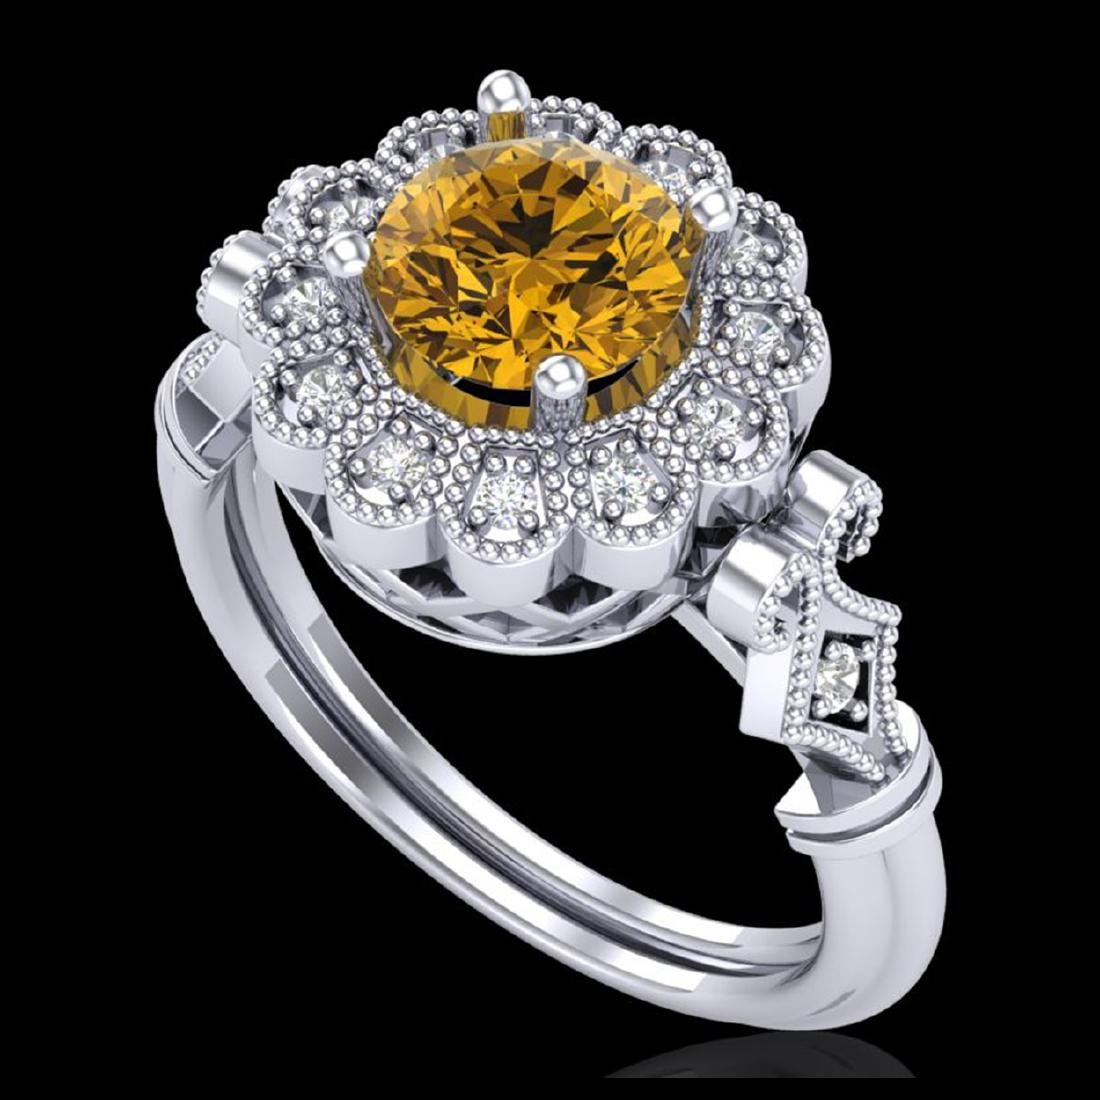 1.2 CTW Intense Fancy Yellow Diamond Engagement Art